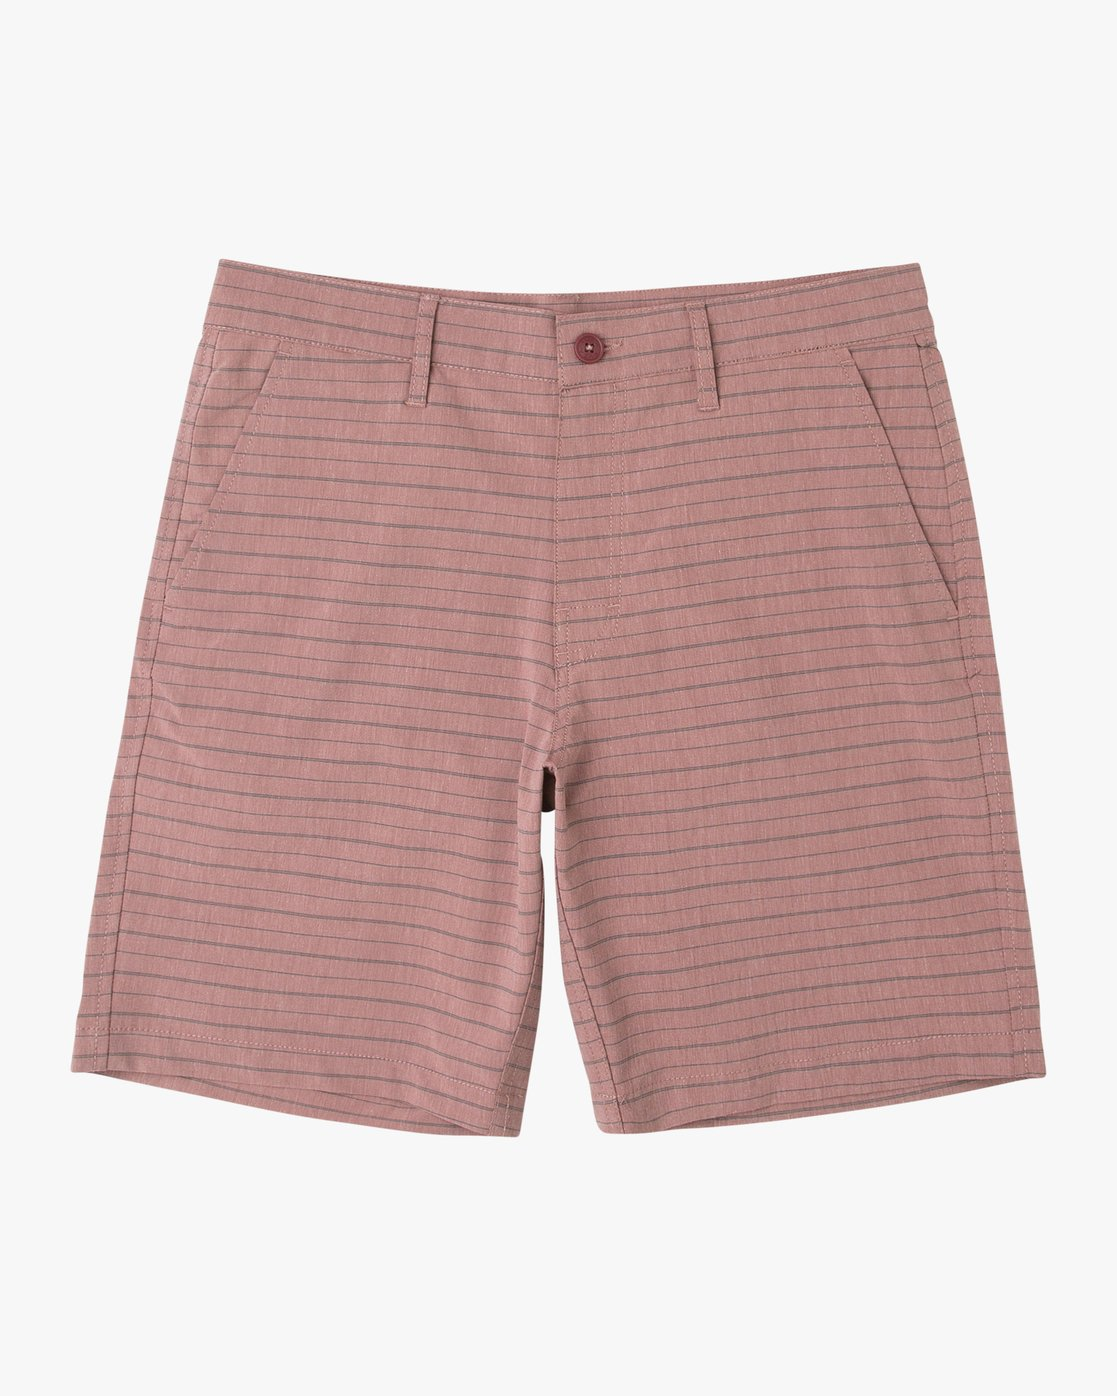 0 Balance Fairview Hybrid Short Grey M203URFH RVCA